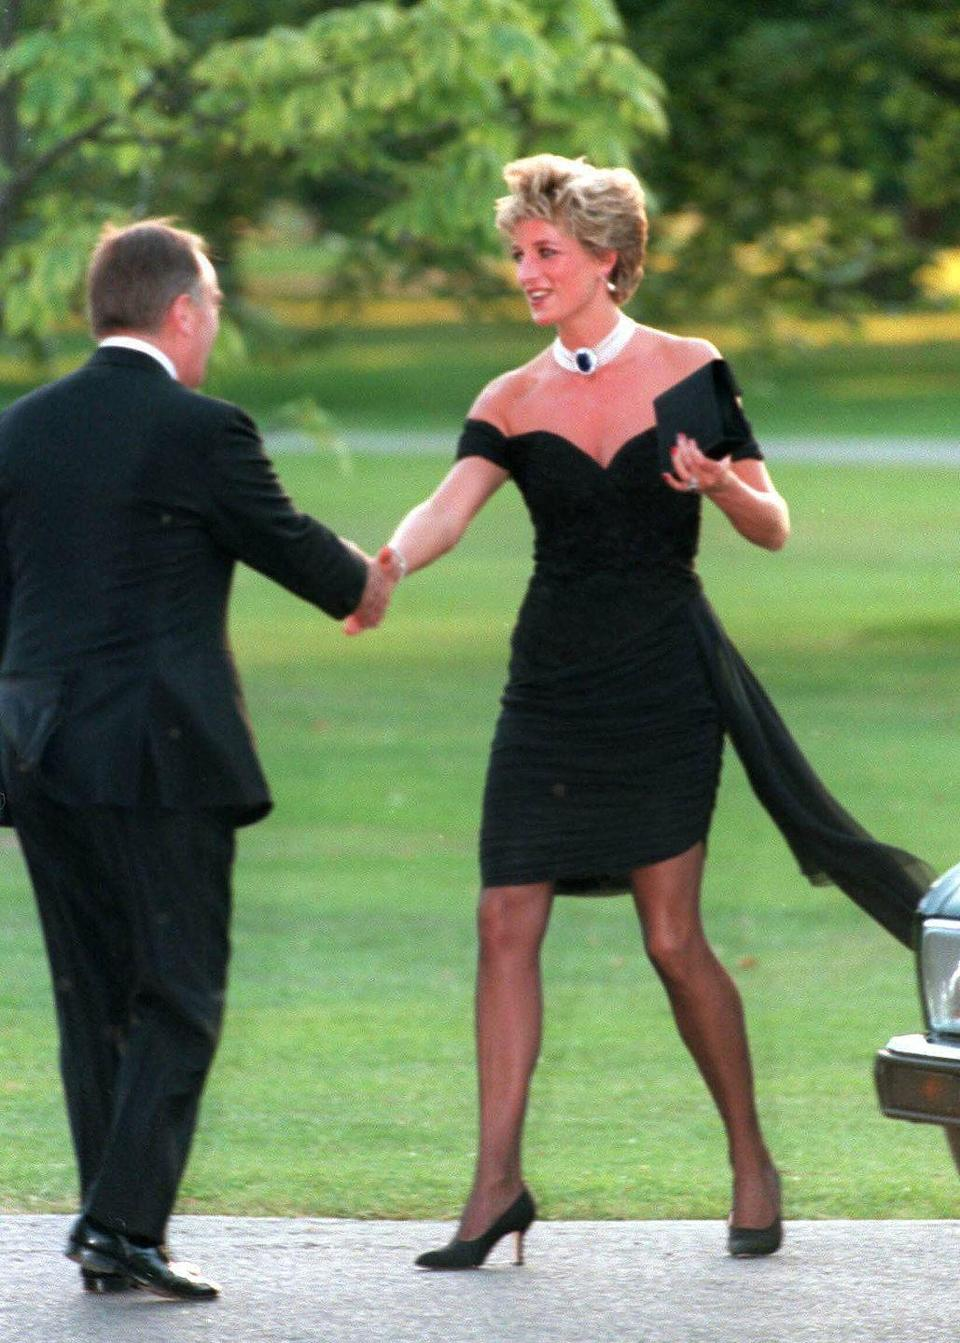 """<p>Has anyone ever rocked a LBD better than Diana? We think not. On the day that Charles admitted his infidelity in a televised interview, Diana wore this fabulous black dress by <a href=""""http://www.christinastambolian.com/"""" rel=""""nofollow noopener"""" target=""""_blank"""" data-ylk=""""slk:Christina Stambolian"""" class=""""link rapid-noclick-resp"""">Christina Stambolian</a>. Enough said. </p>"""